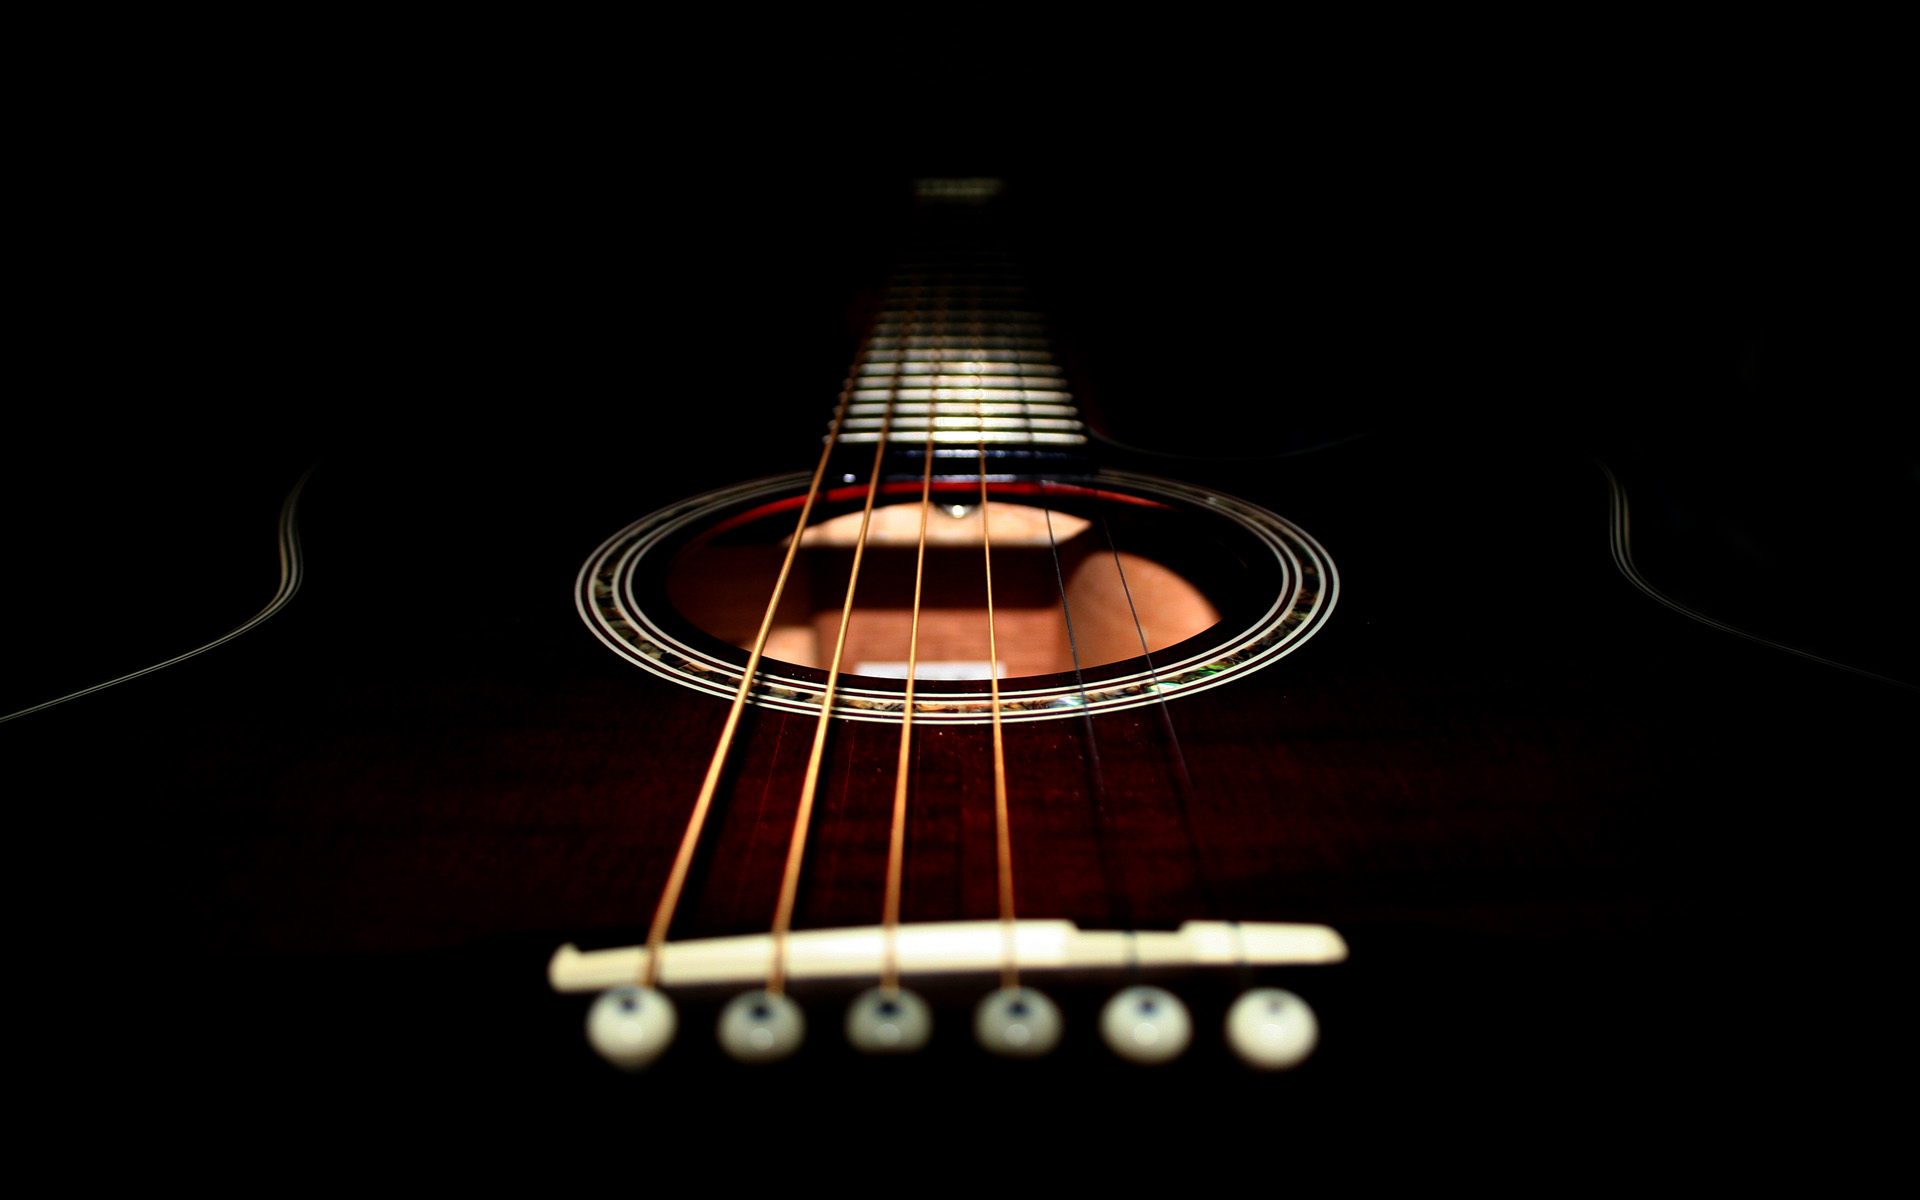 Guitar Wallpaper Photos Windows Download